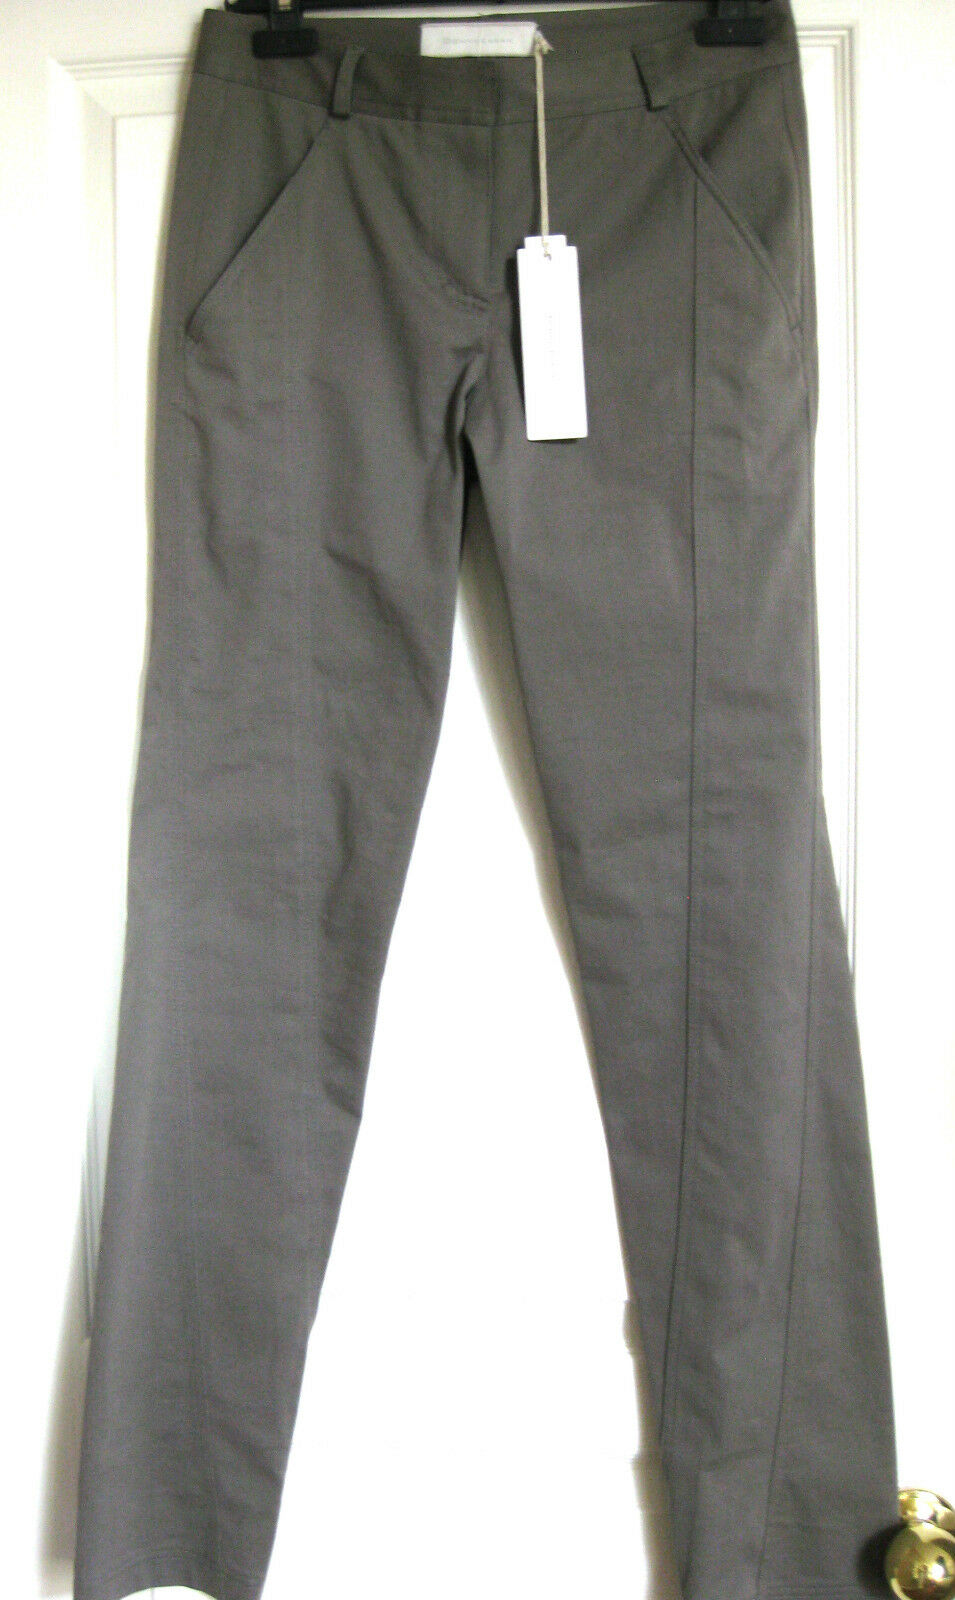 women KARAN COLLECTION  Casual Luxe (white label) Pant size 4 NWT